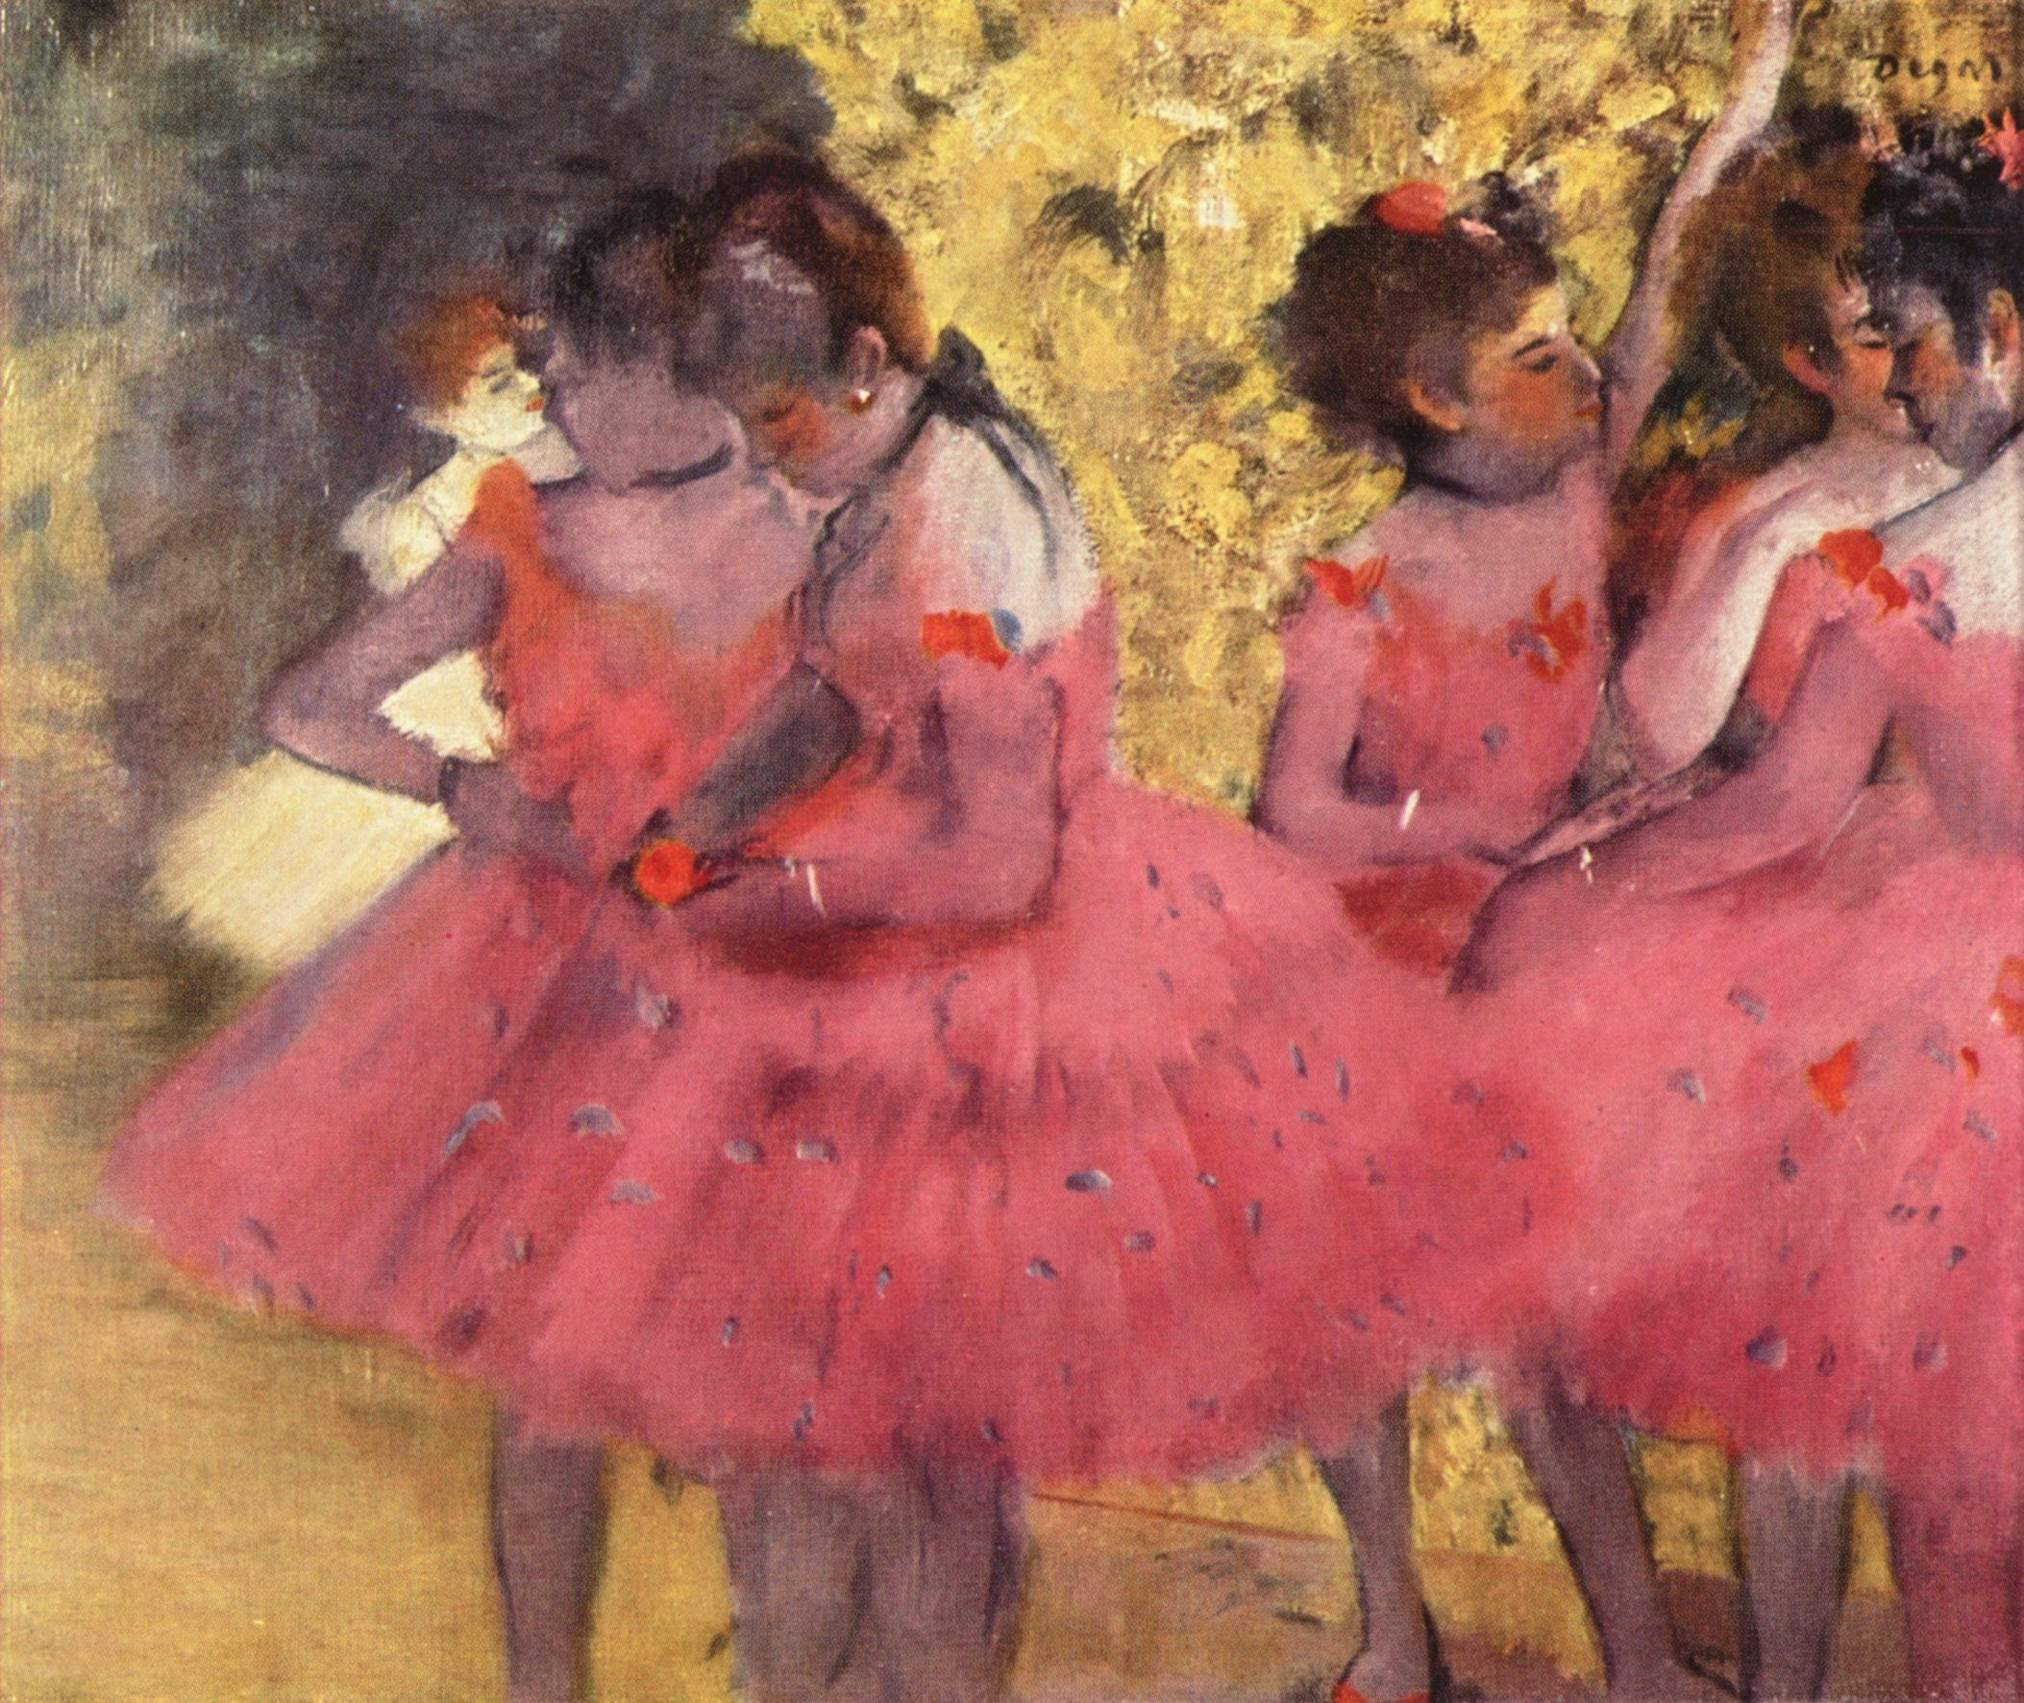 http://upload.wikimedia.org/wikipedia/commons/4/4c/Edgar_Germain_Hilaire_Degas_079.jpg?uselang=fr